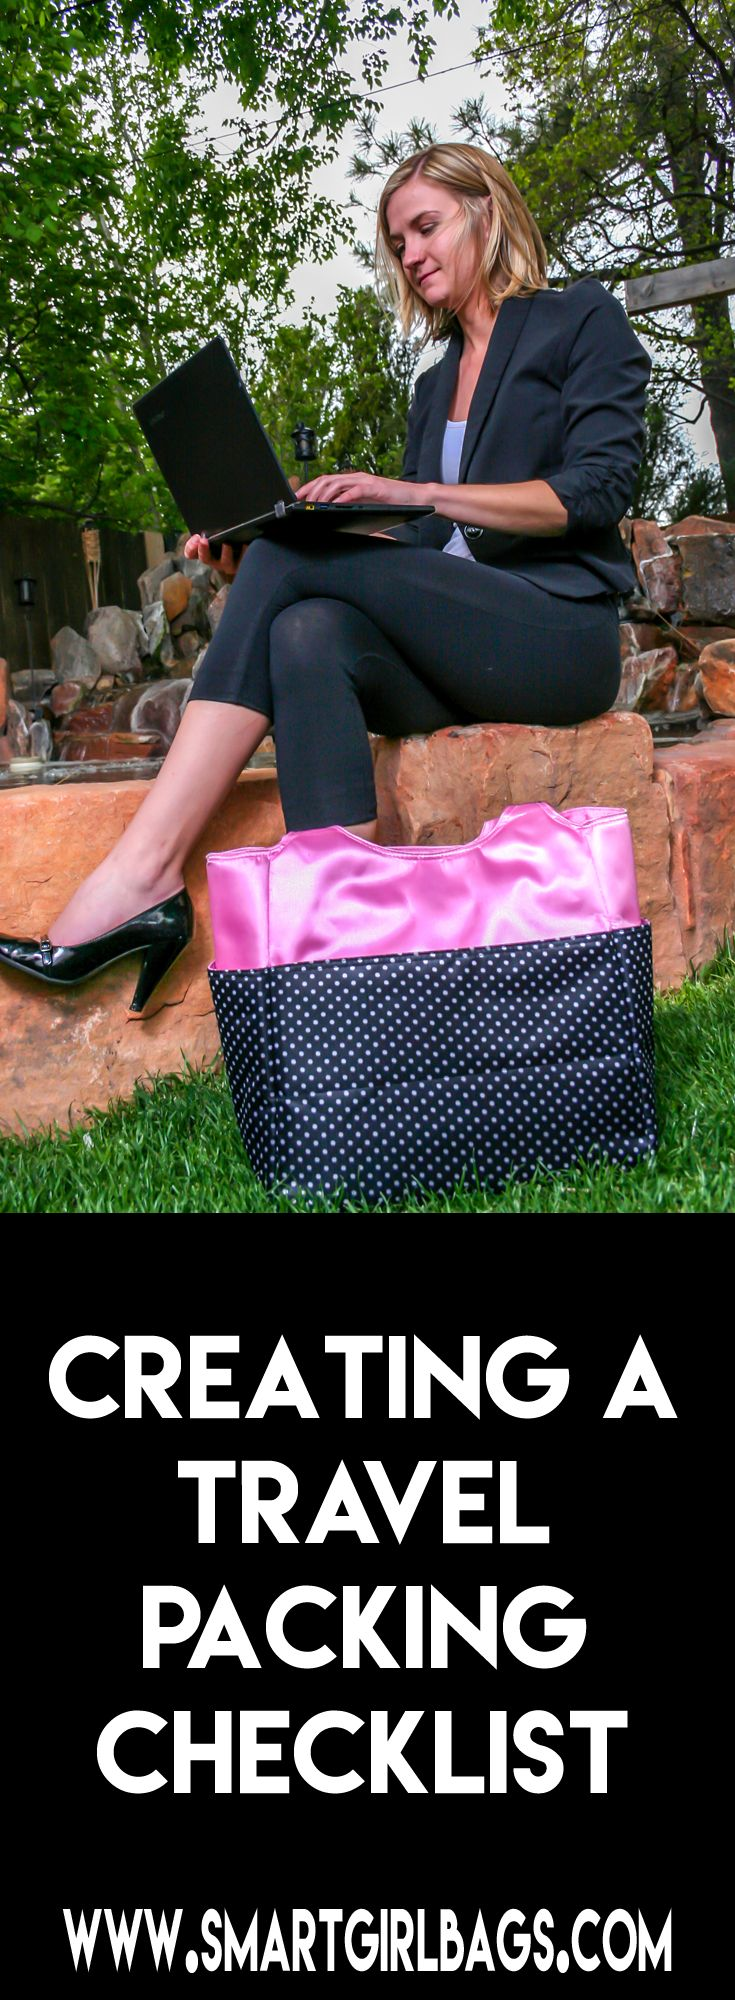 Tips and tricks to creating a travel packing checklist. Travel bags from SmartGirlBags.com